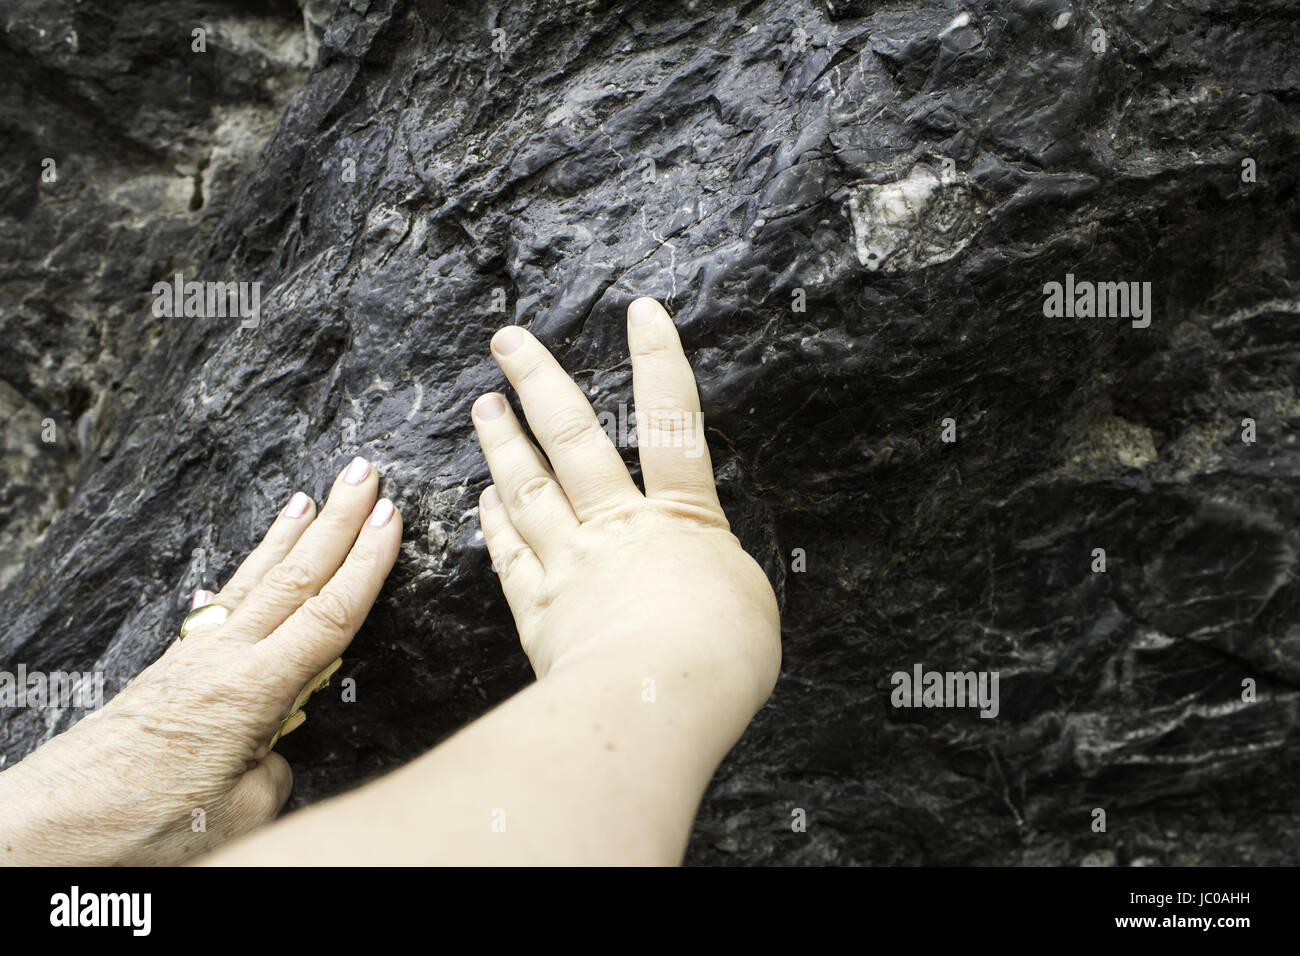 Hands in cave of religious lourdes, faith and catholic belief - Stock Image